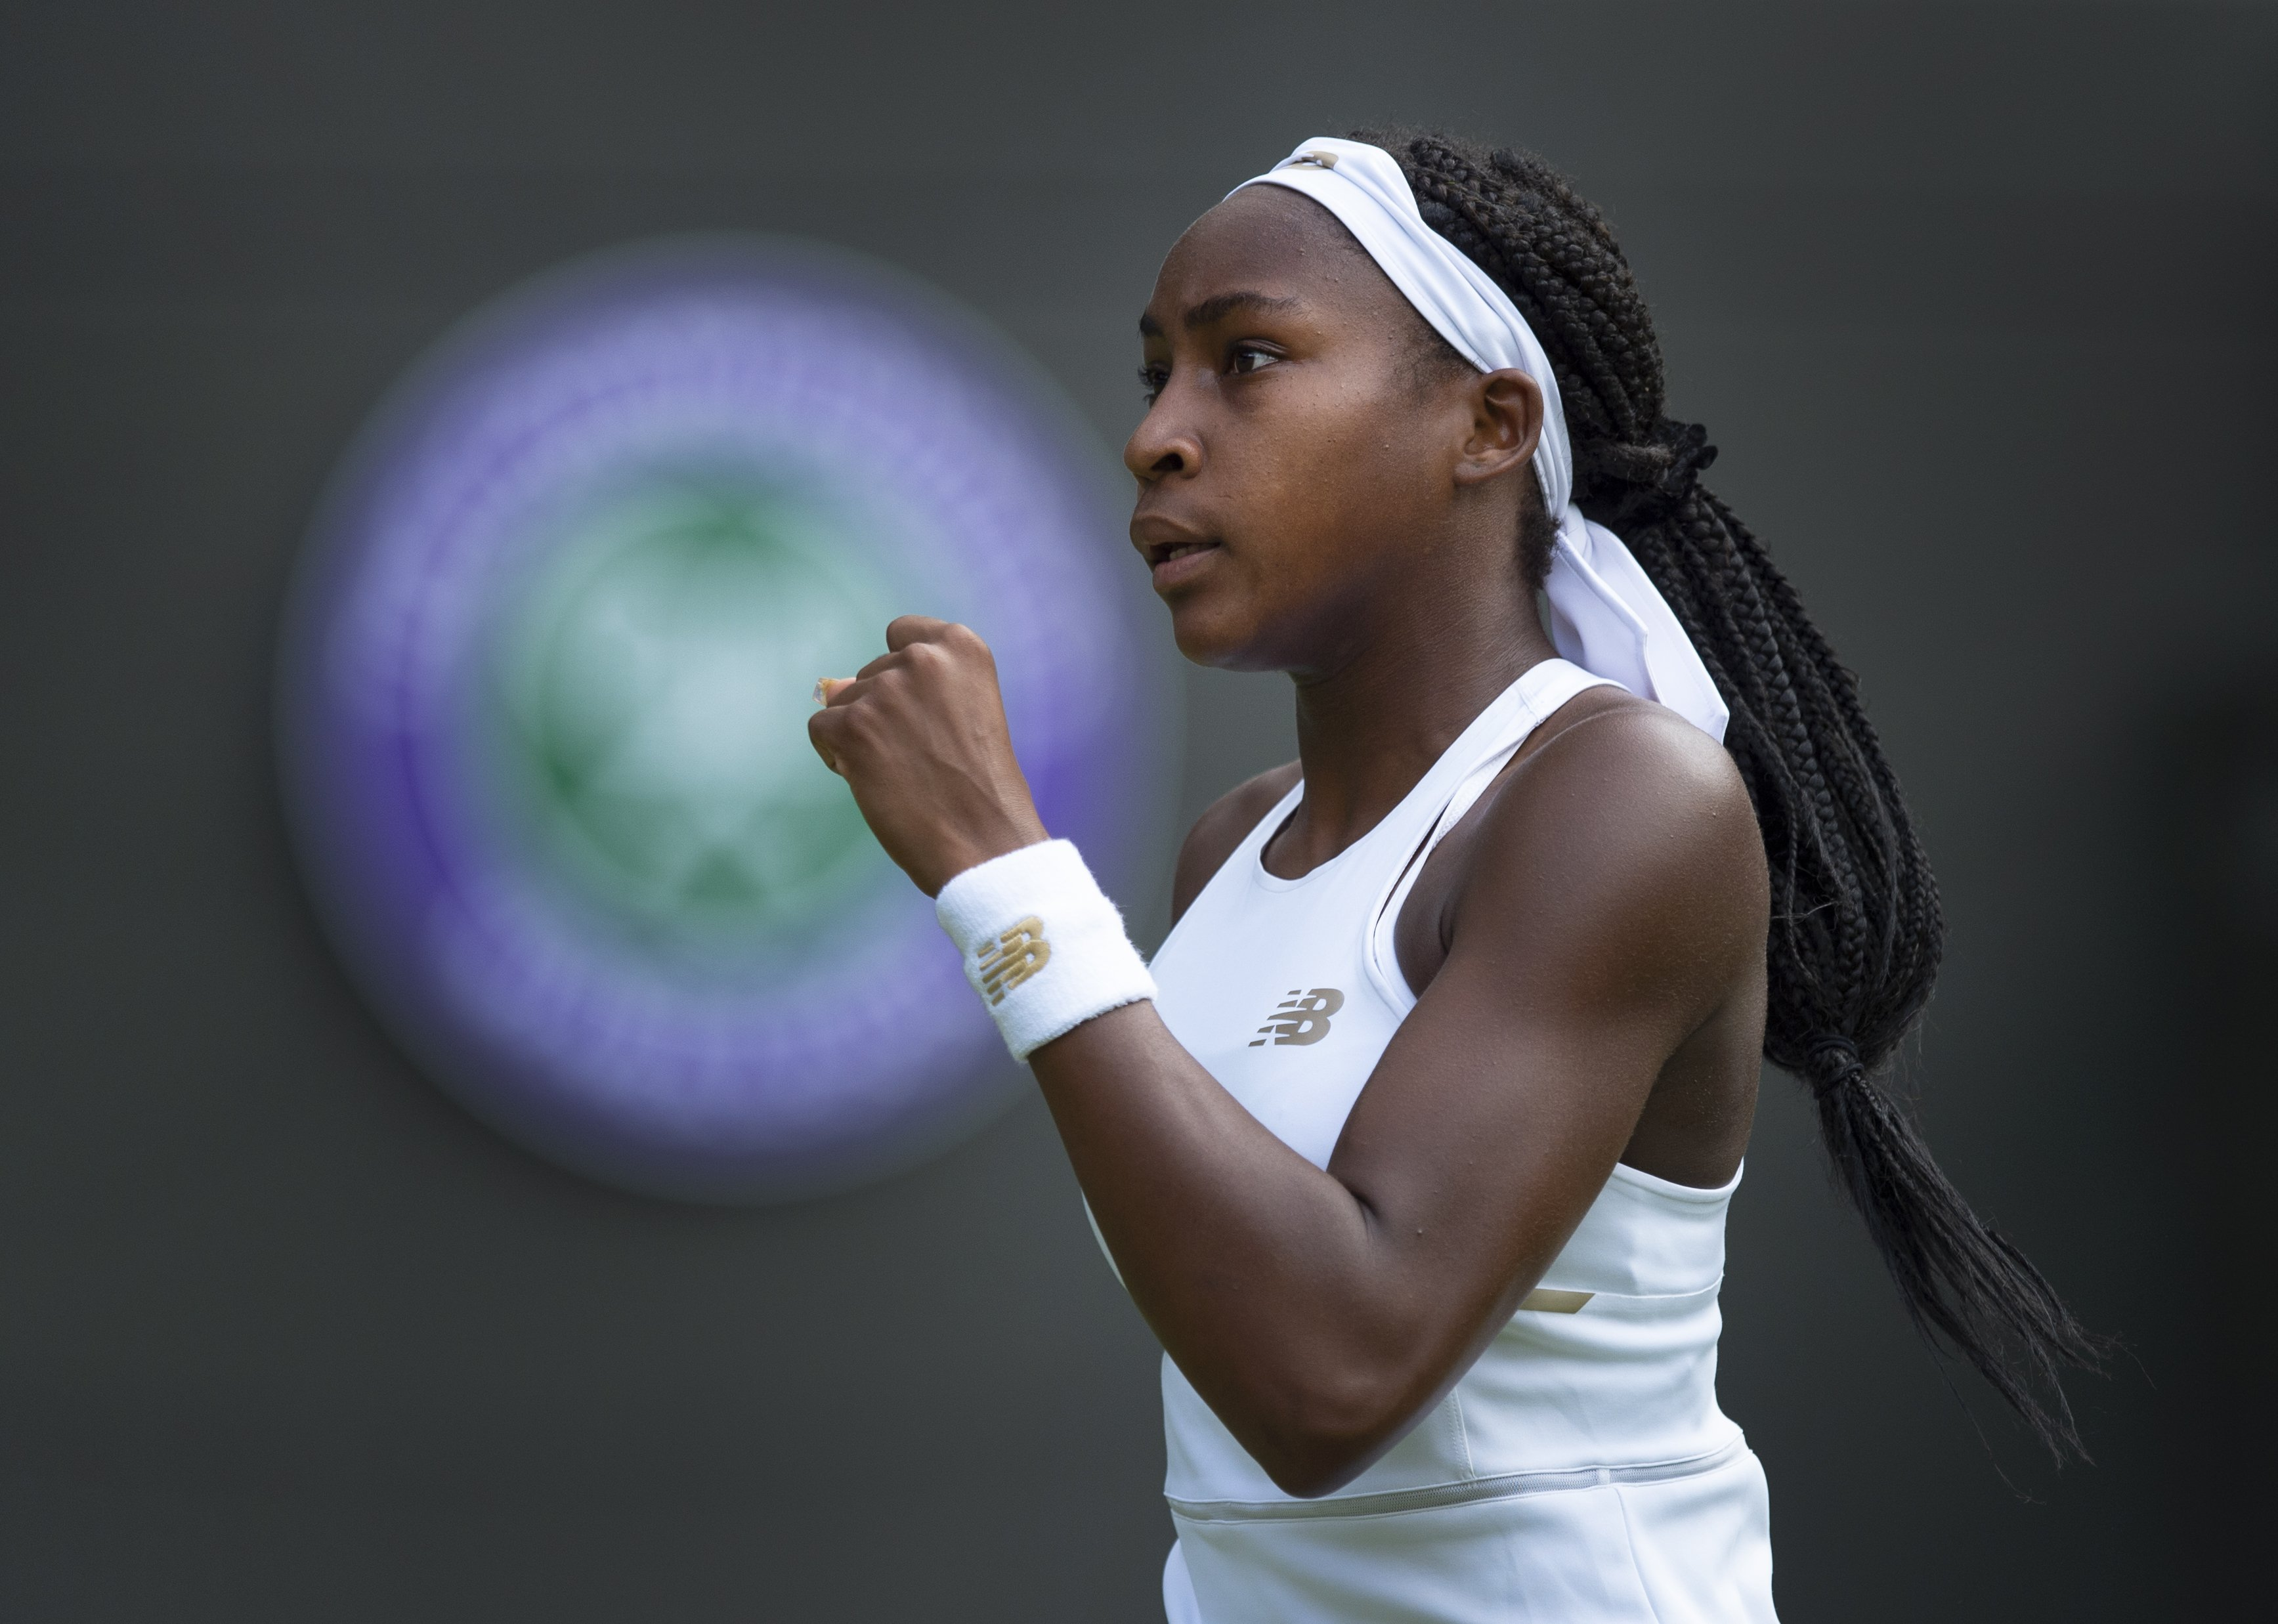 Cori Gauff playing against Venus Williams at Wimbledon 2019 in London, England on July 1, 2019. | Photo: Getty Images